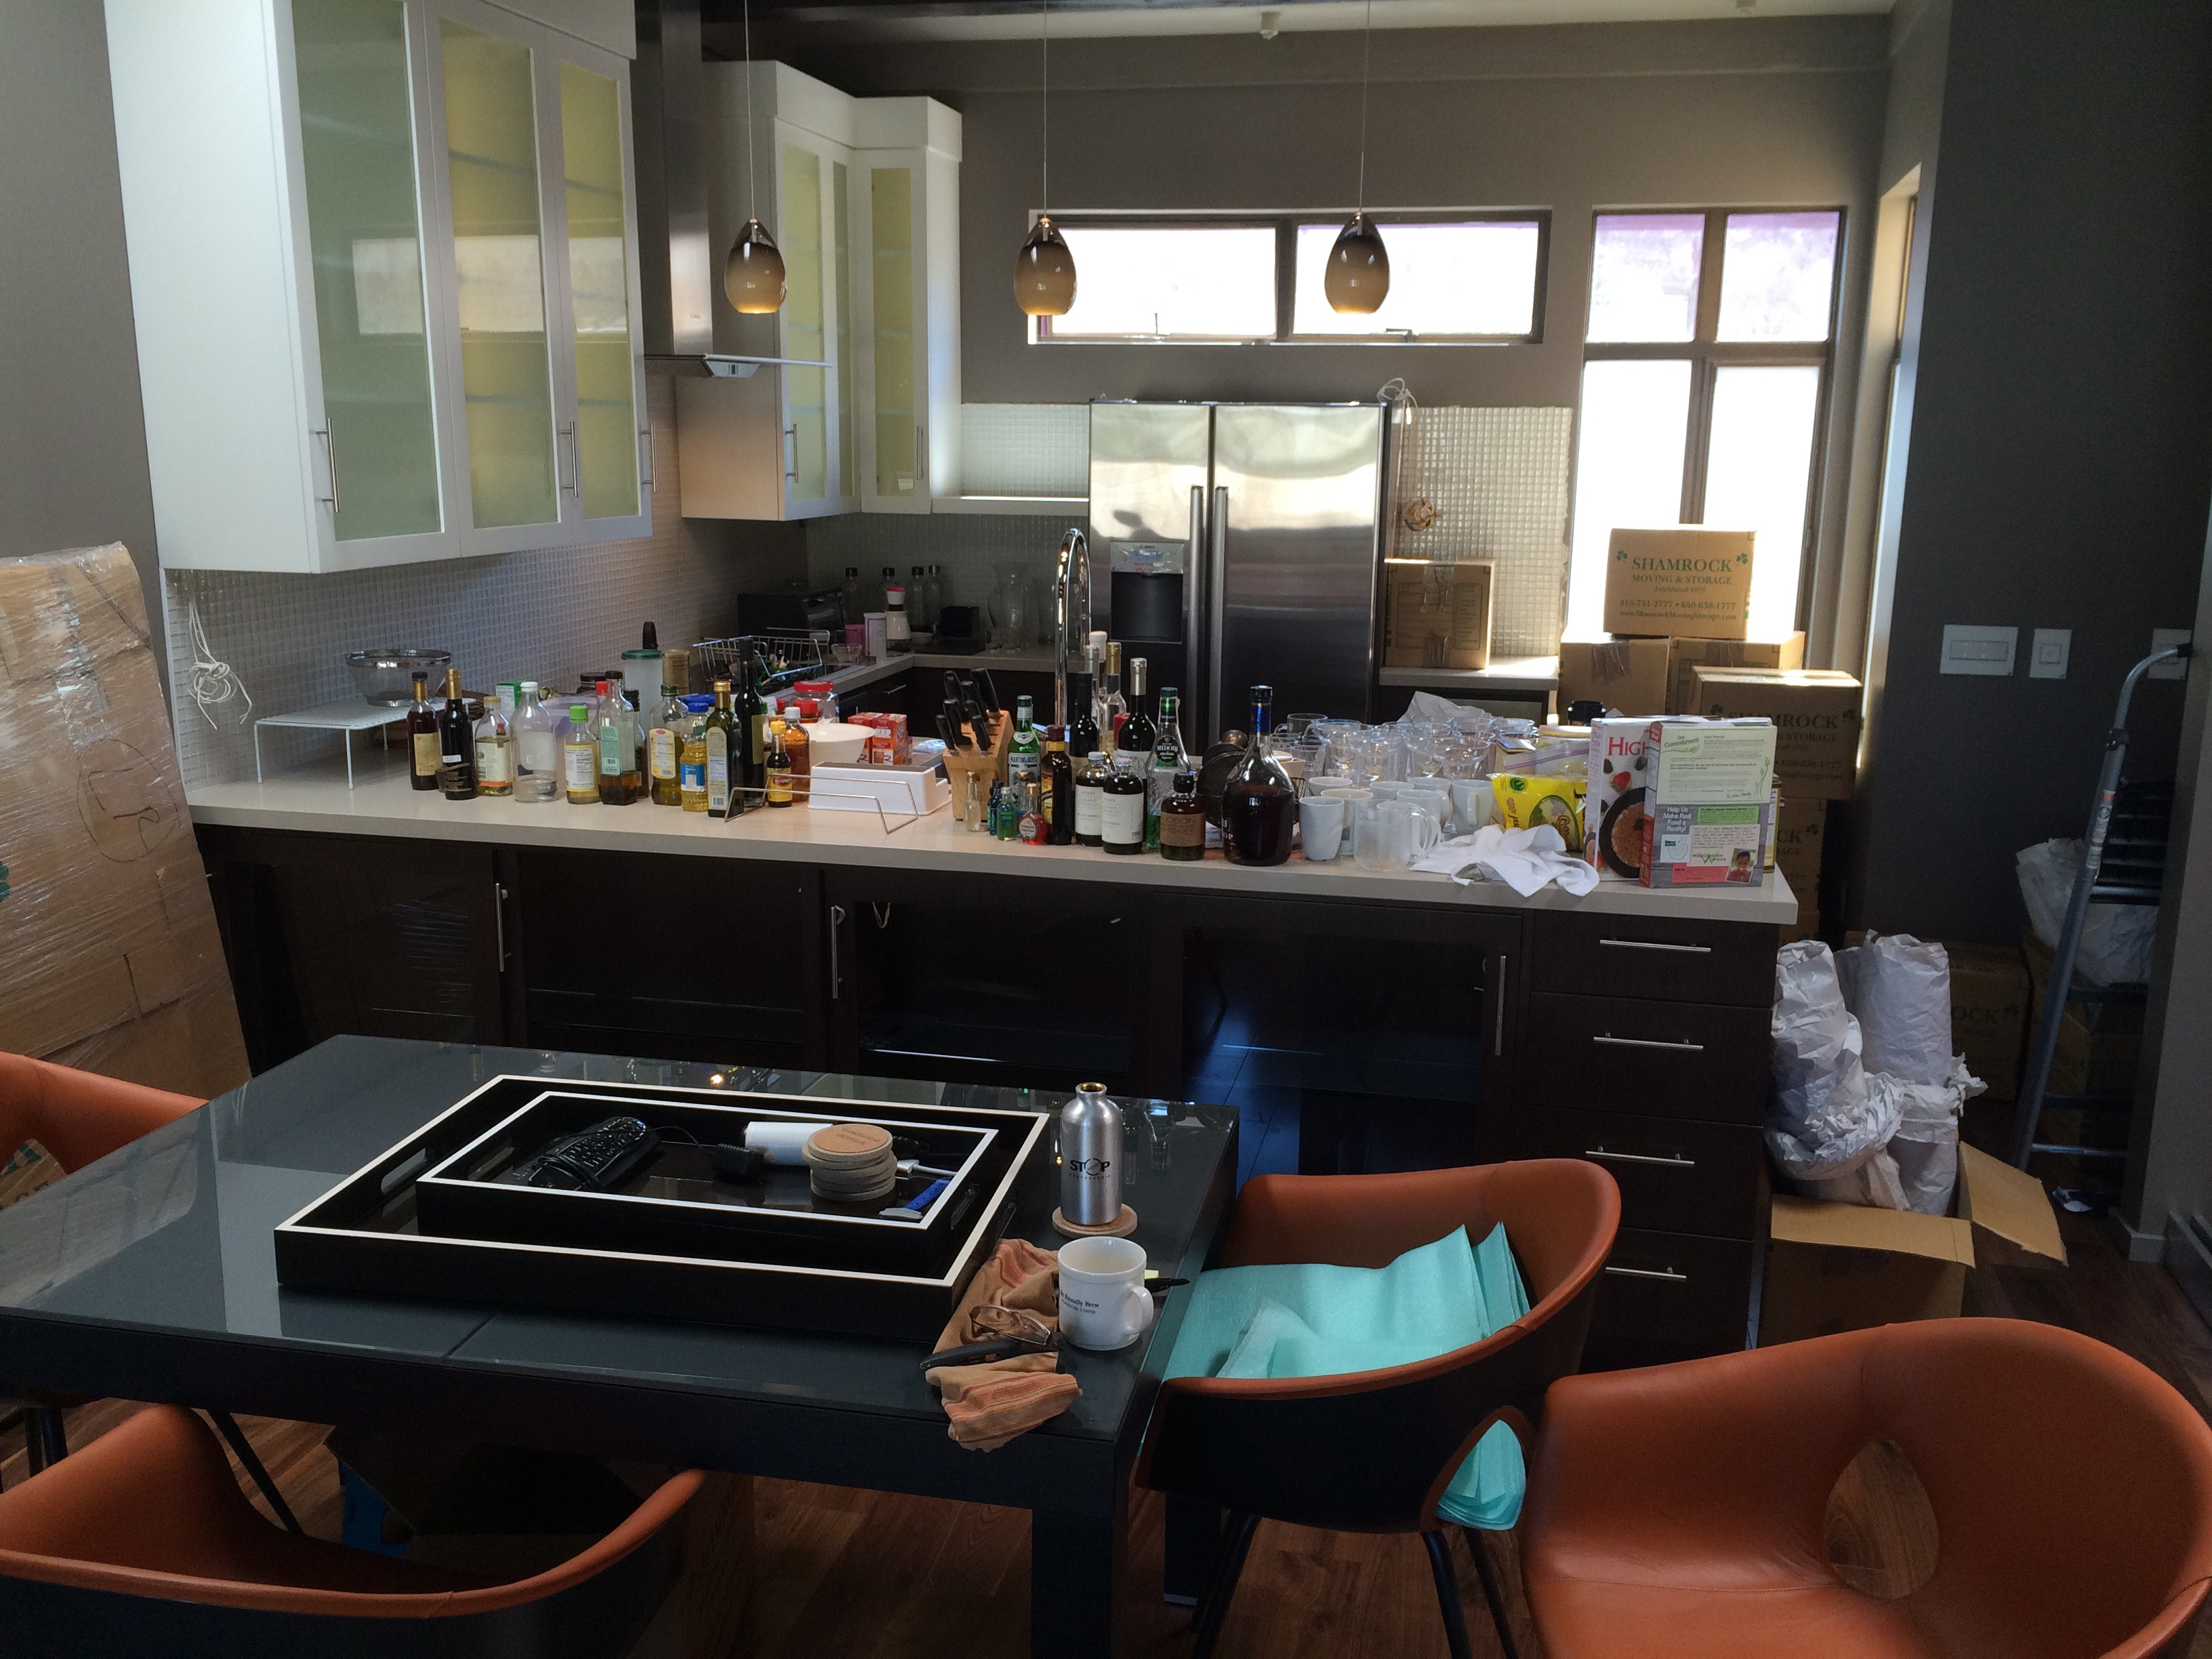 Before-Kitchen Remodel Unpack